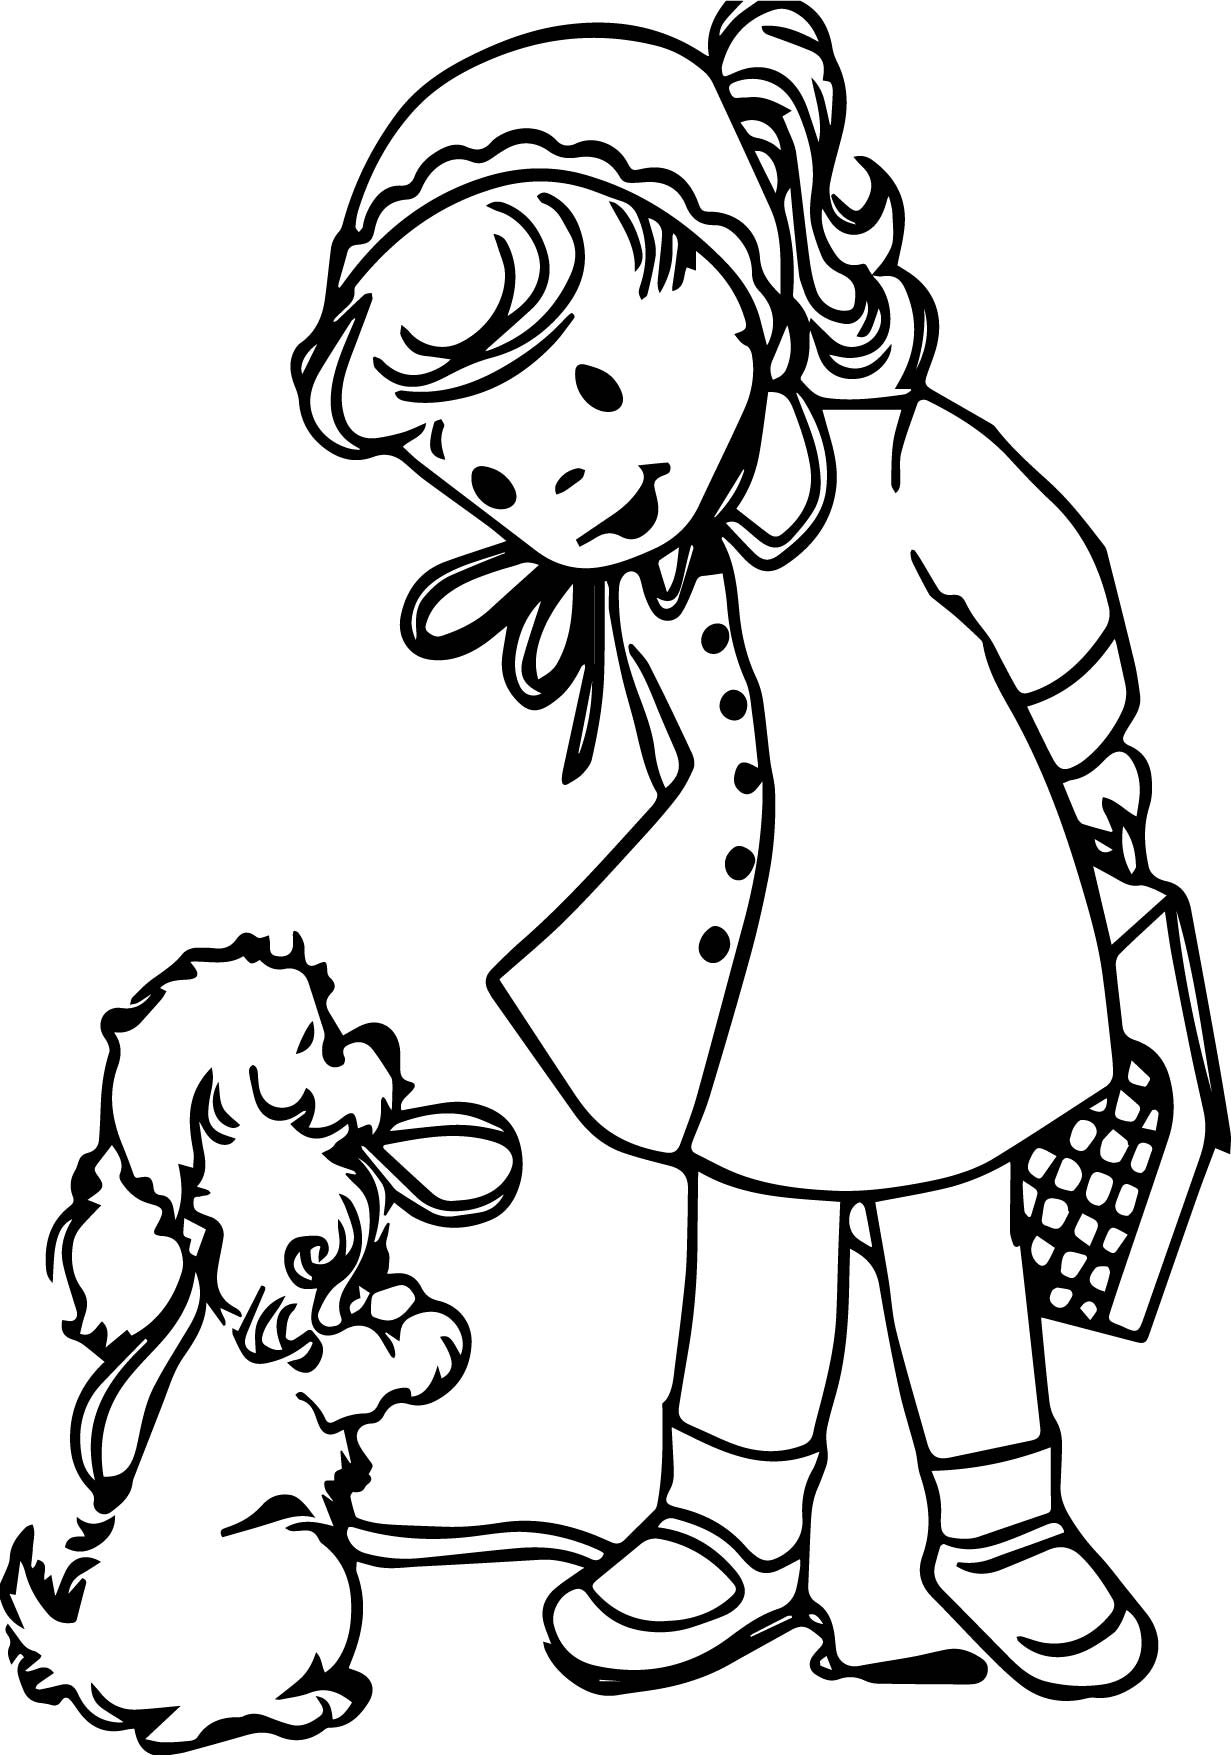 puppy printable coloring pages - girl with puppy printable coloring page